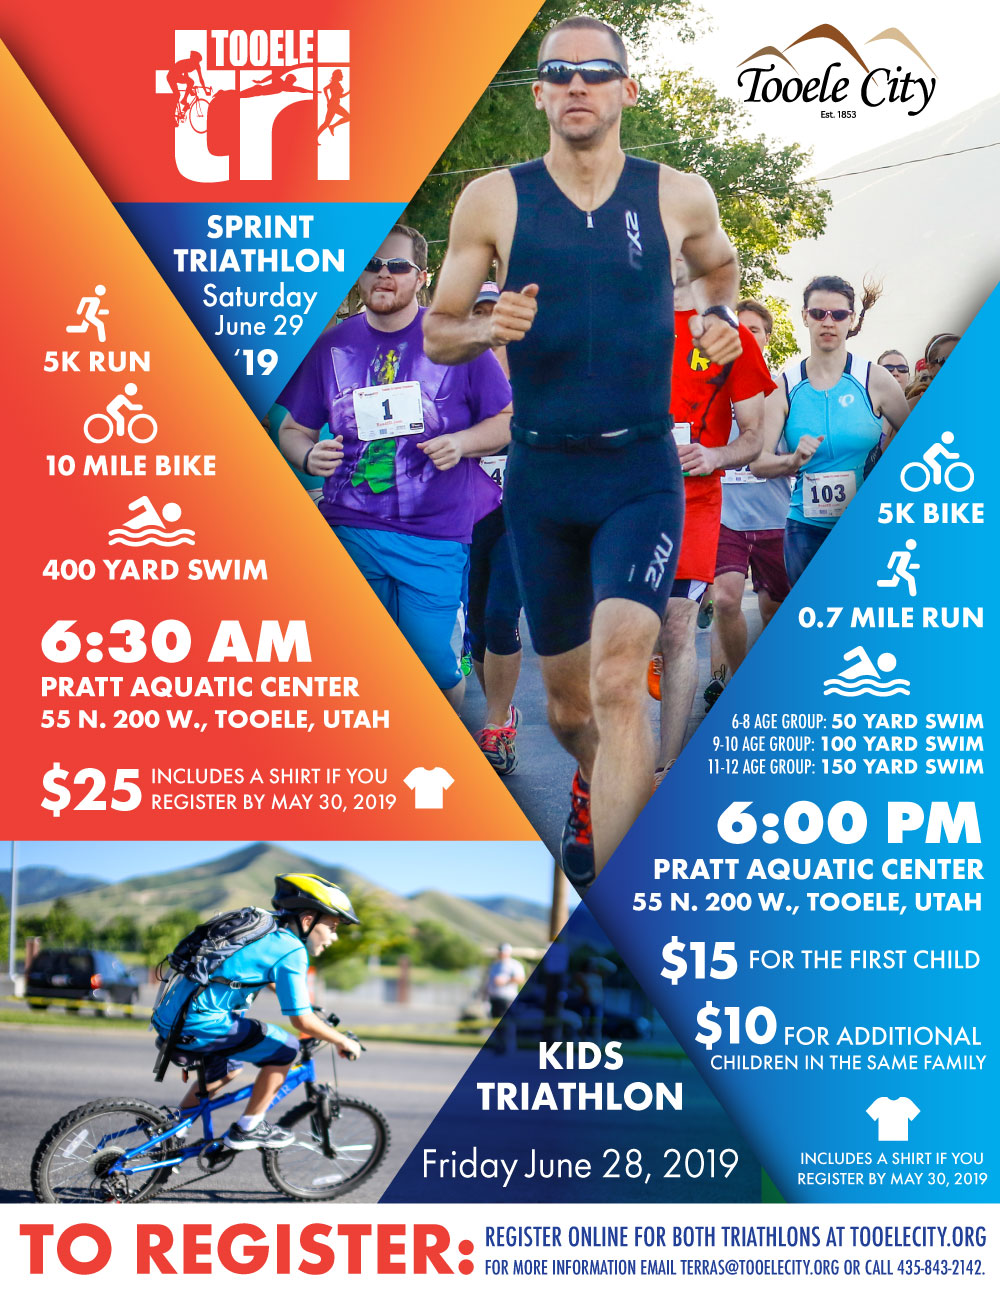 Tooele Tri:  Kids Triathlon 2019 @ Pratt Aquatic Center | Tooele | Utah | United States